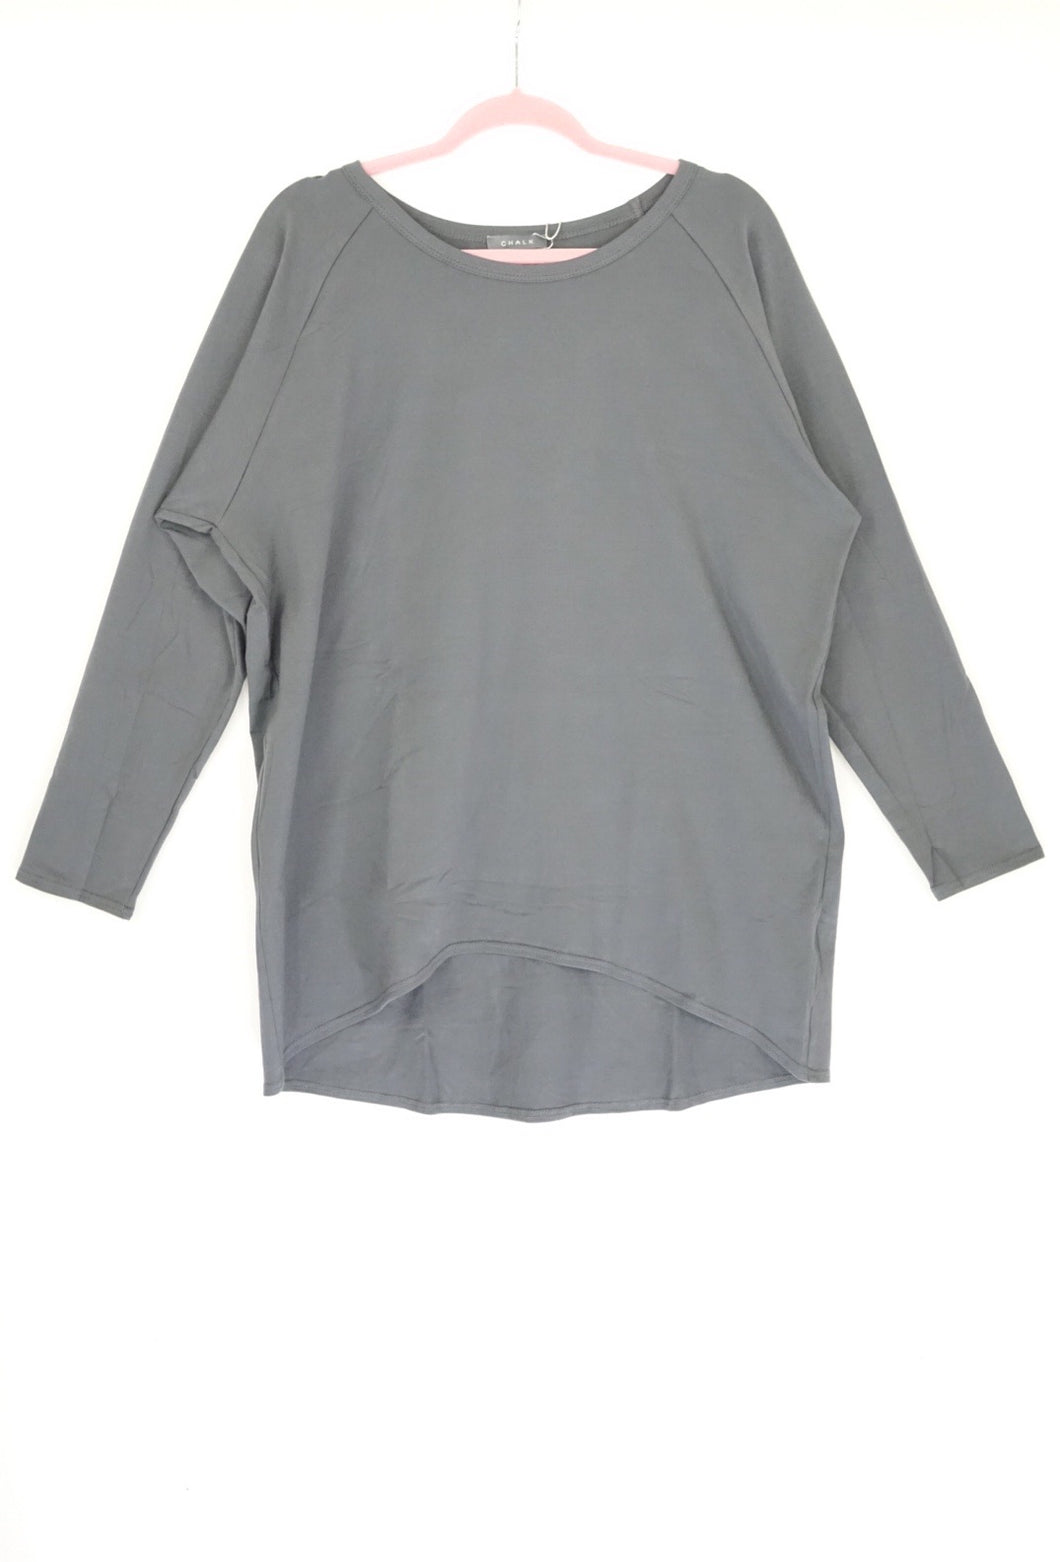 Chalk Long Sleeve Grey Top